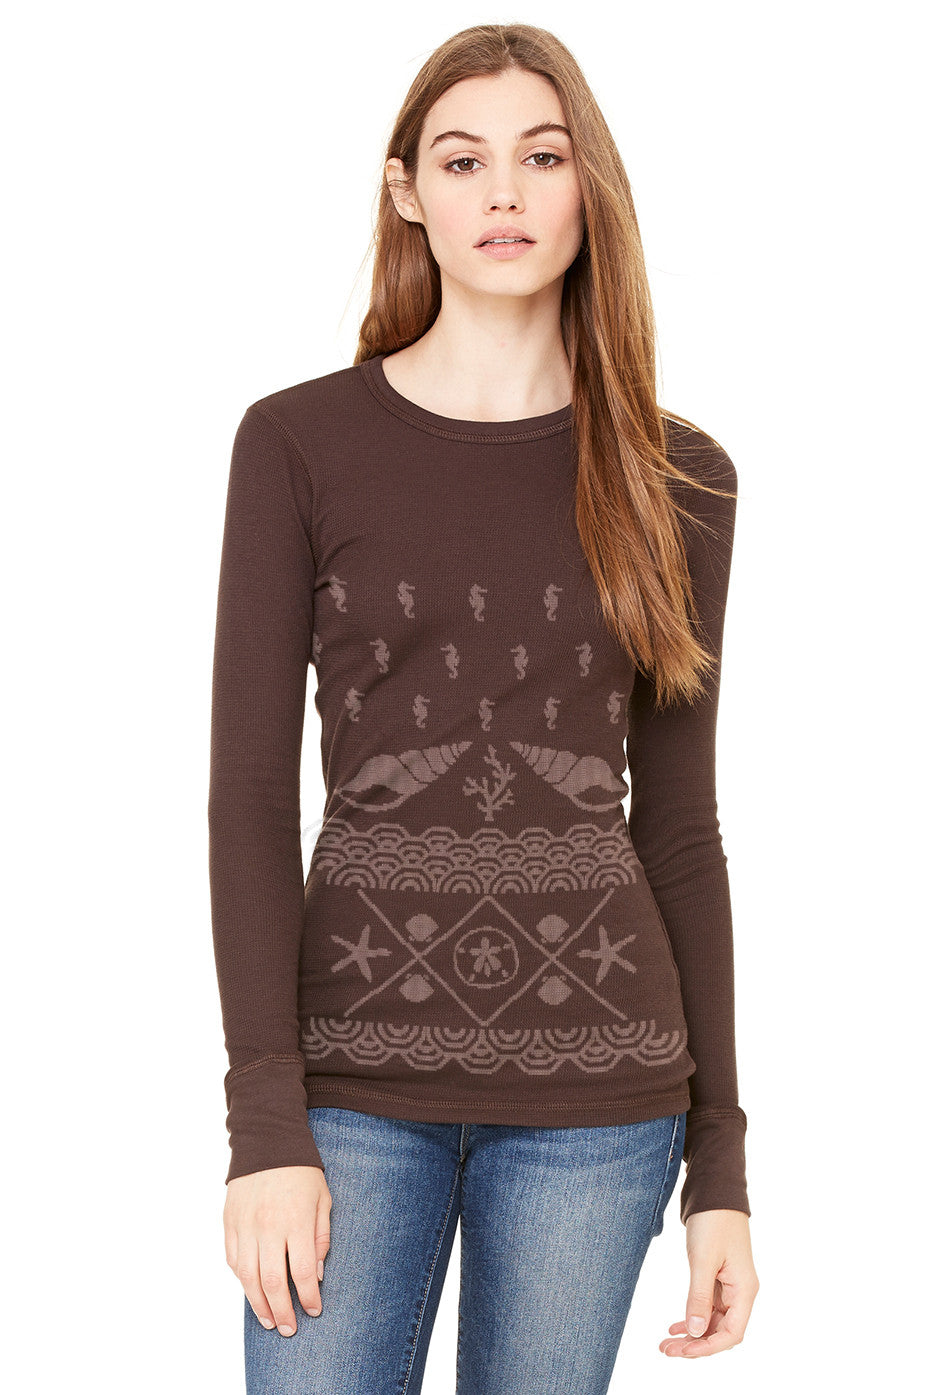 UNDER THE SEA HOLIDAY SWEATER THERMAL